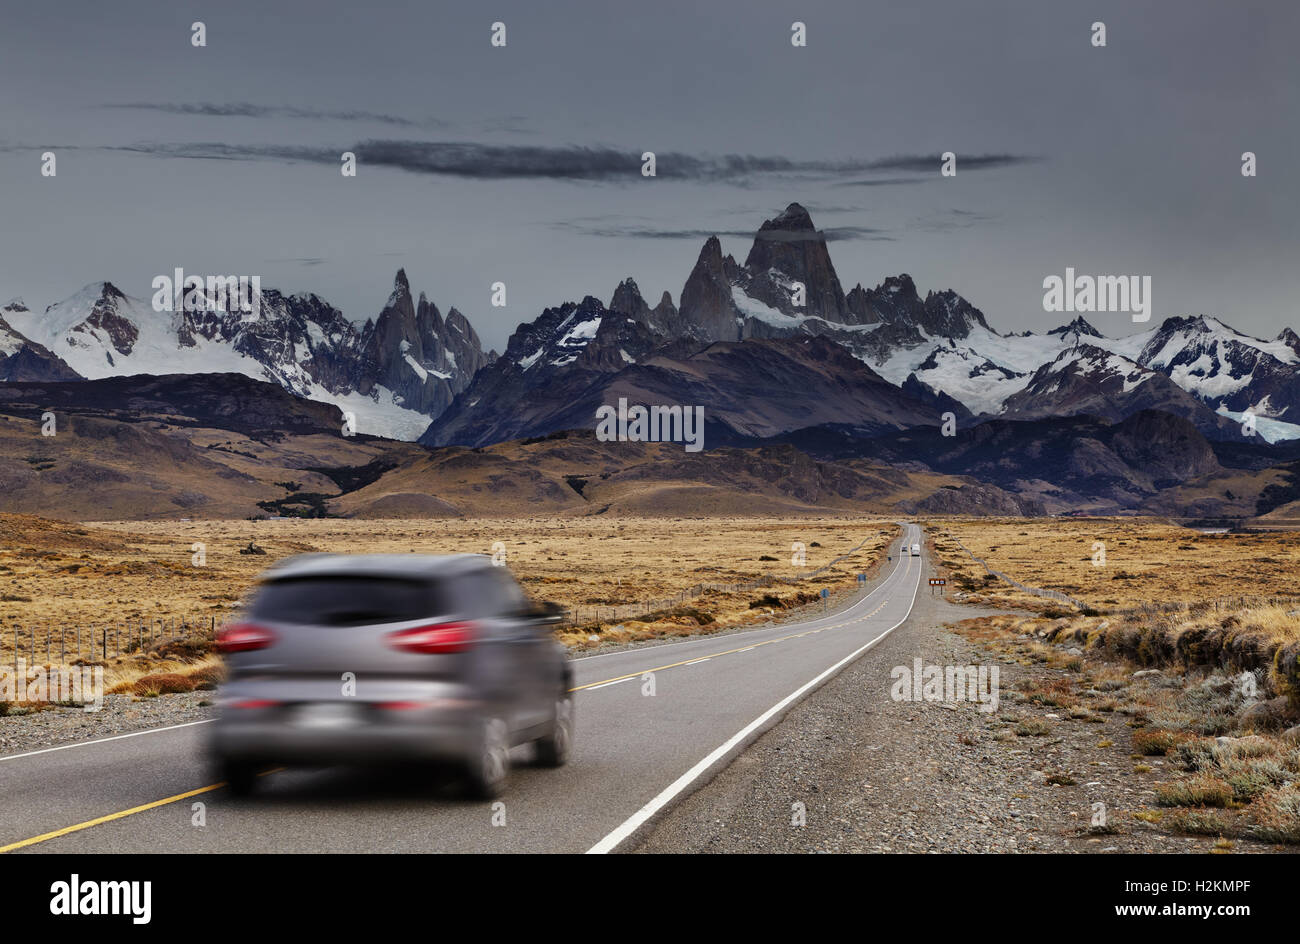 Blurred car traveling on the road to Los Glaciares National Park, Patagonia, Argentina - Stock Image